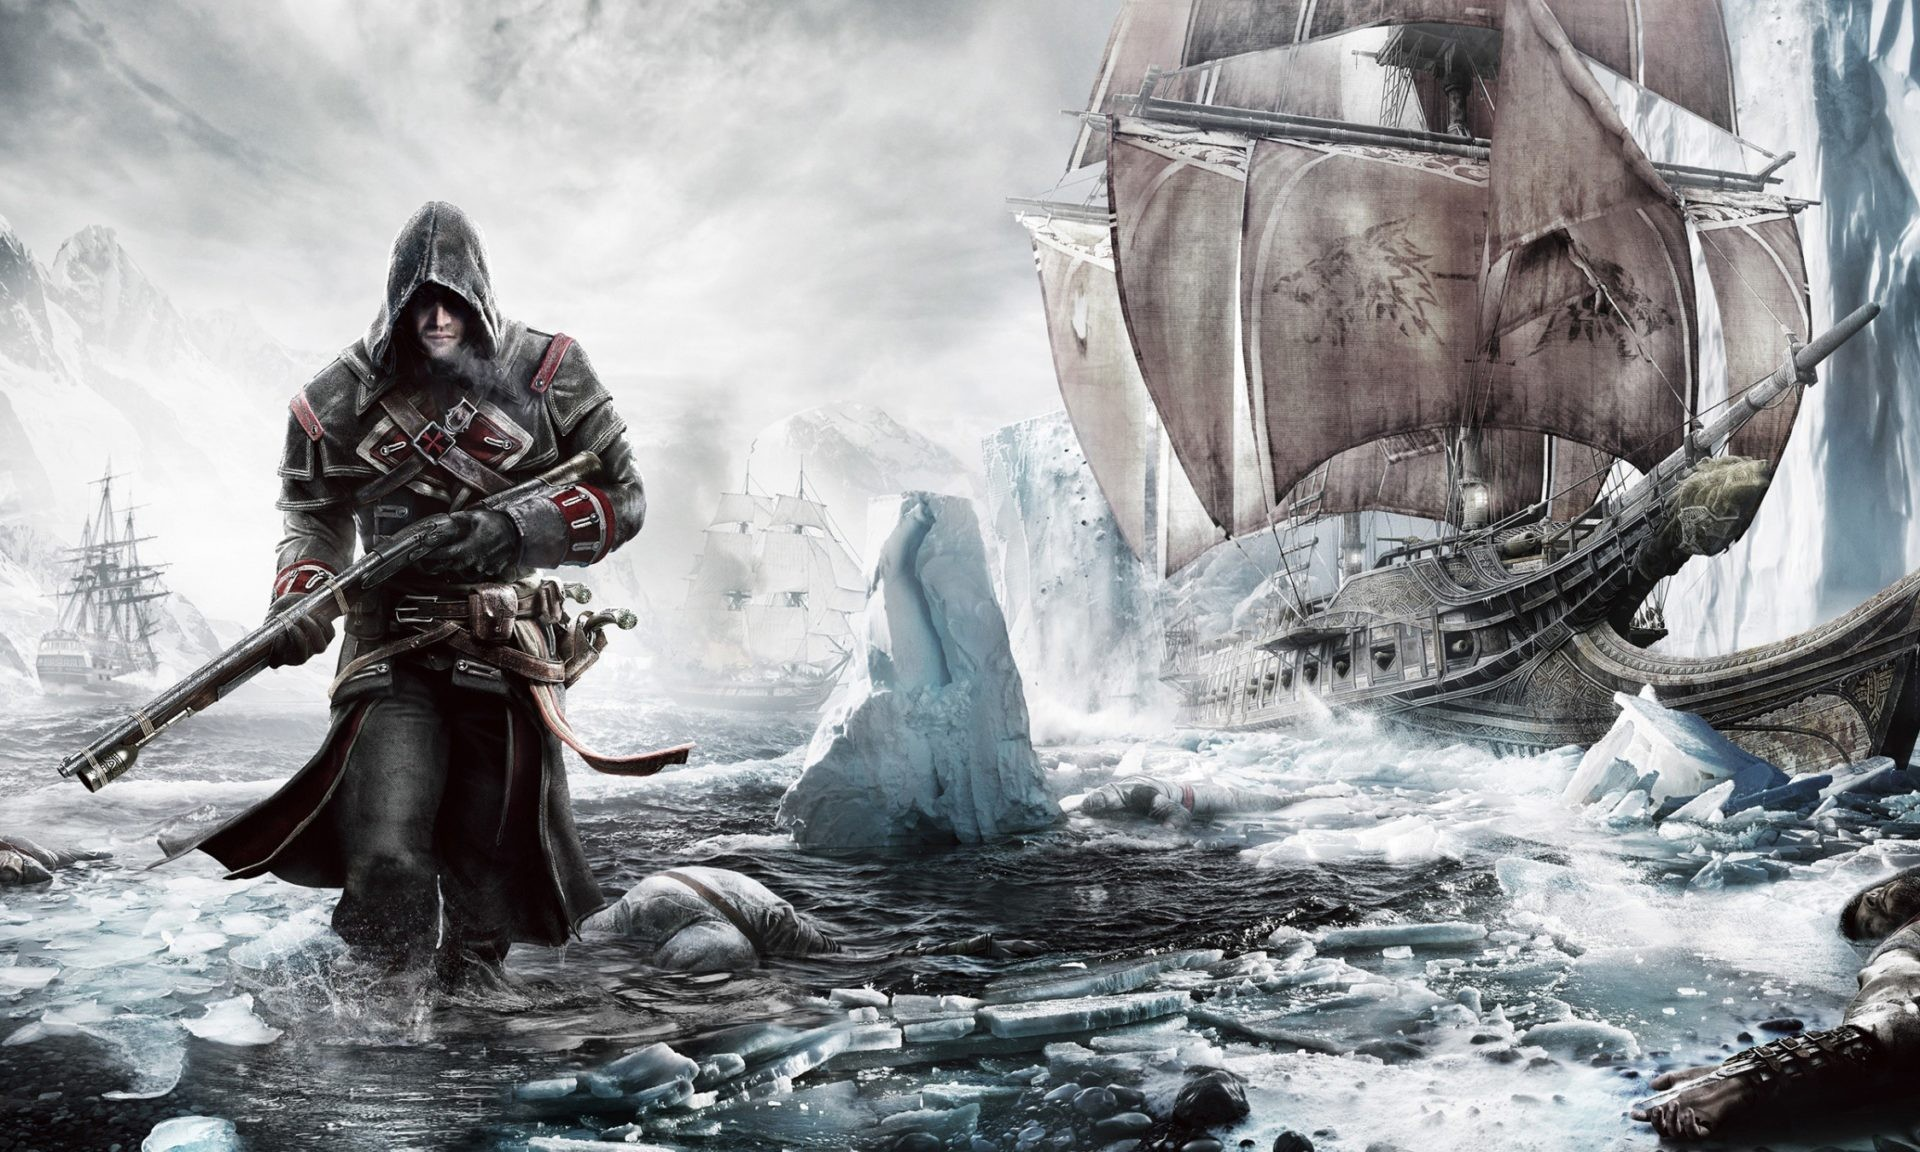 Download Assassin's Creed Rogue Shipwreck Wallpapers from Below Resolution.